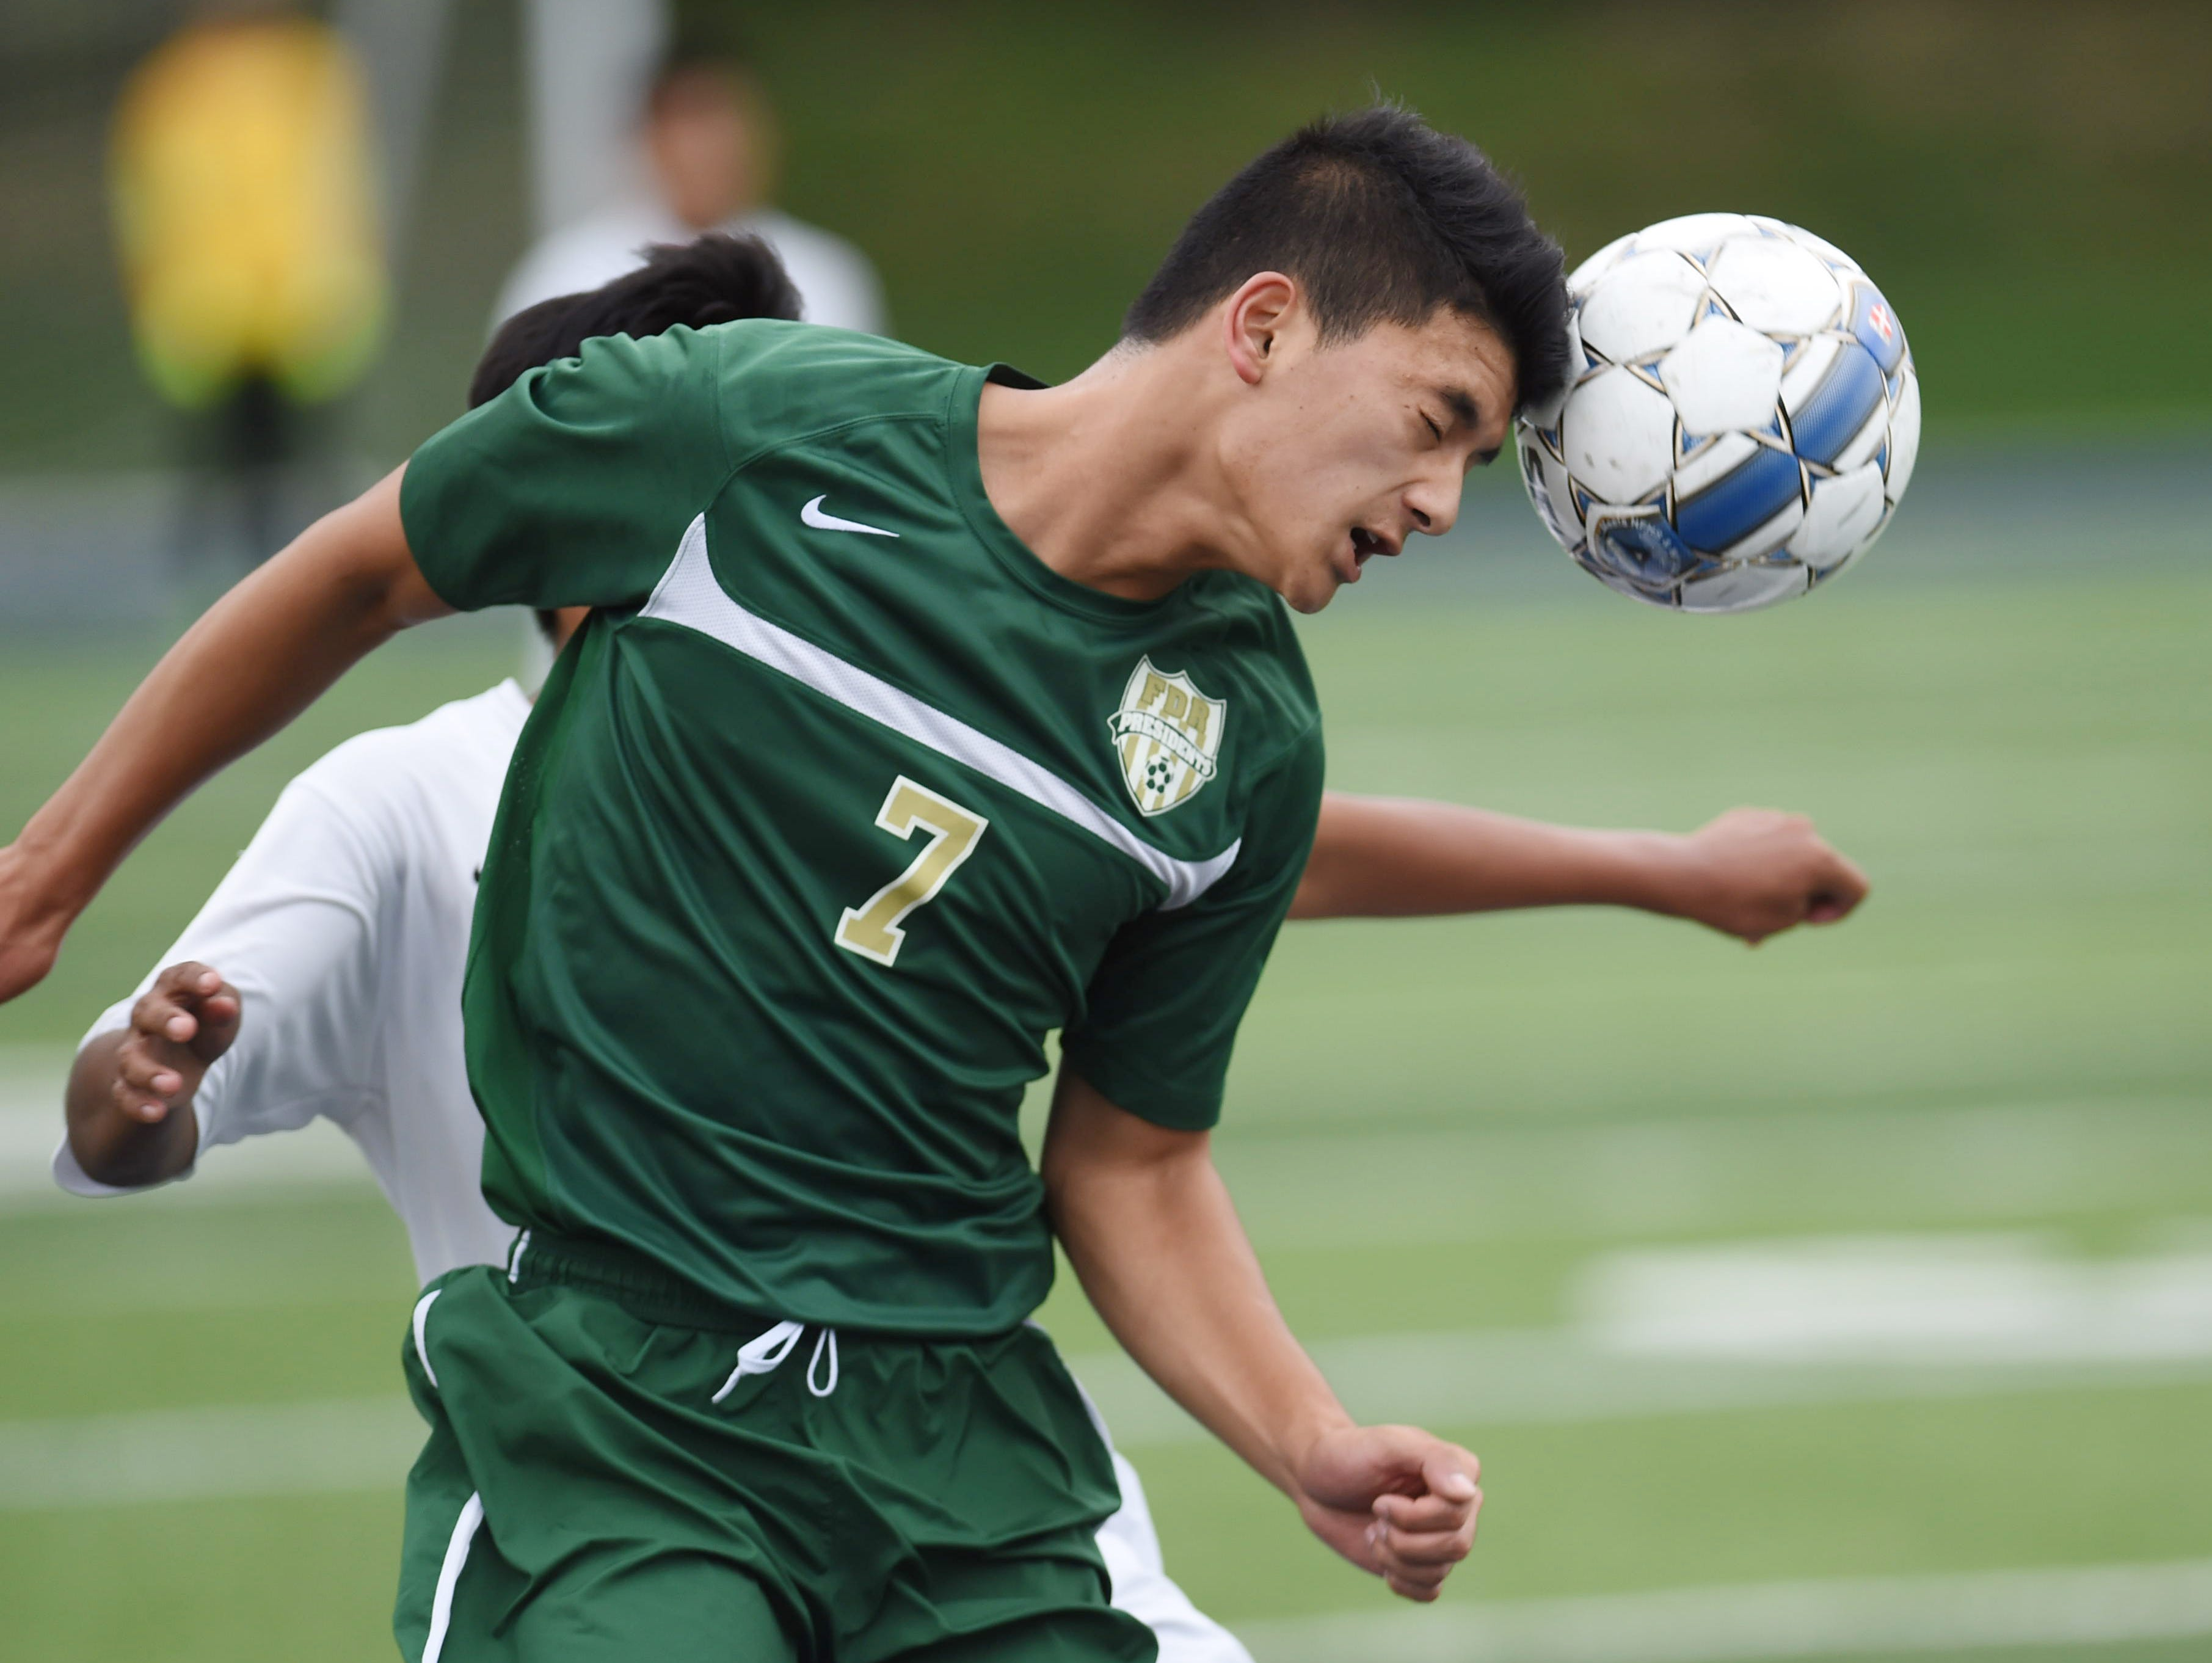 FDR's RJ Constantino headers the ball during Thursday's game versus Poughkeepsie High School in Poughkeepsie.